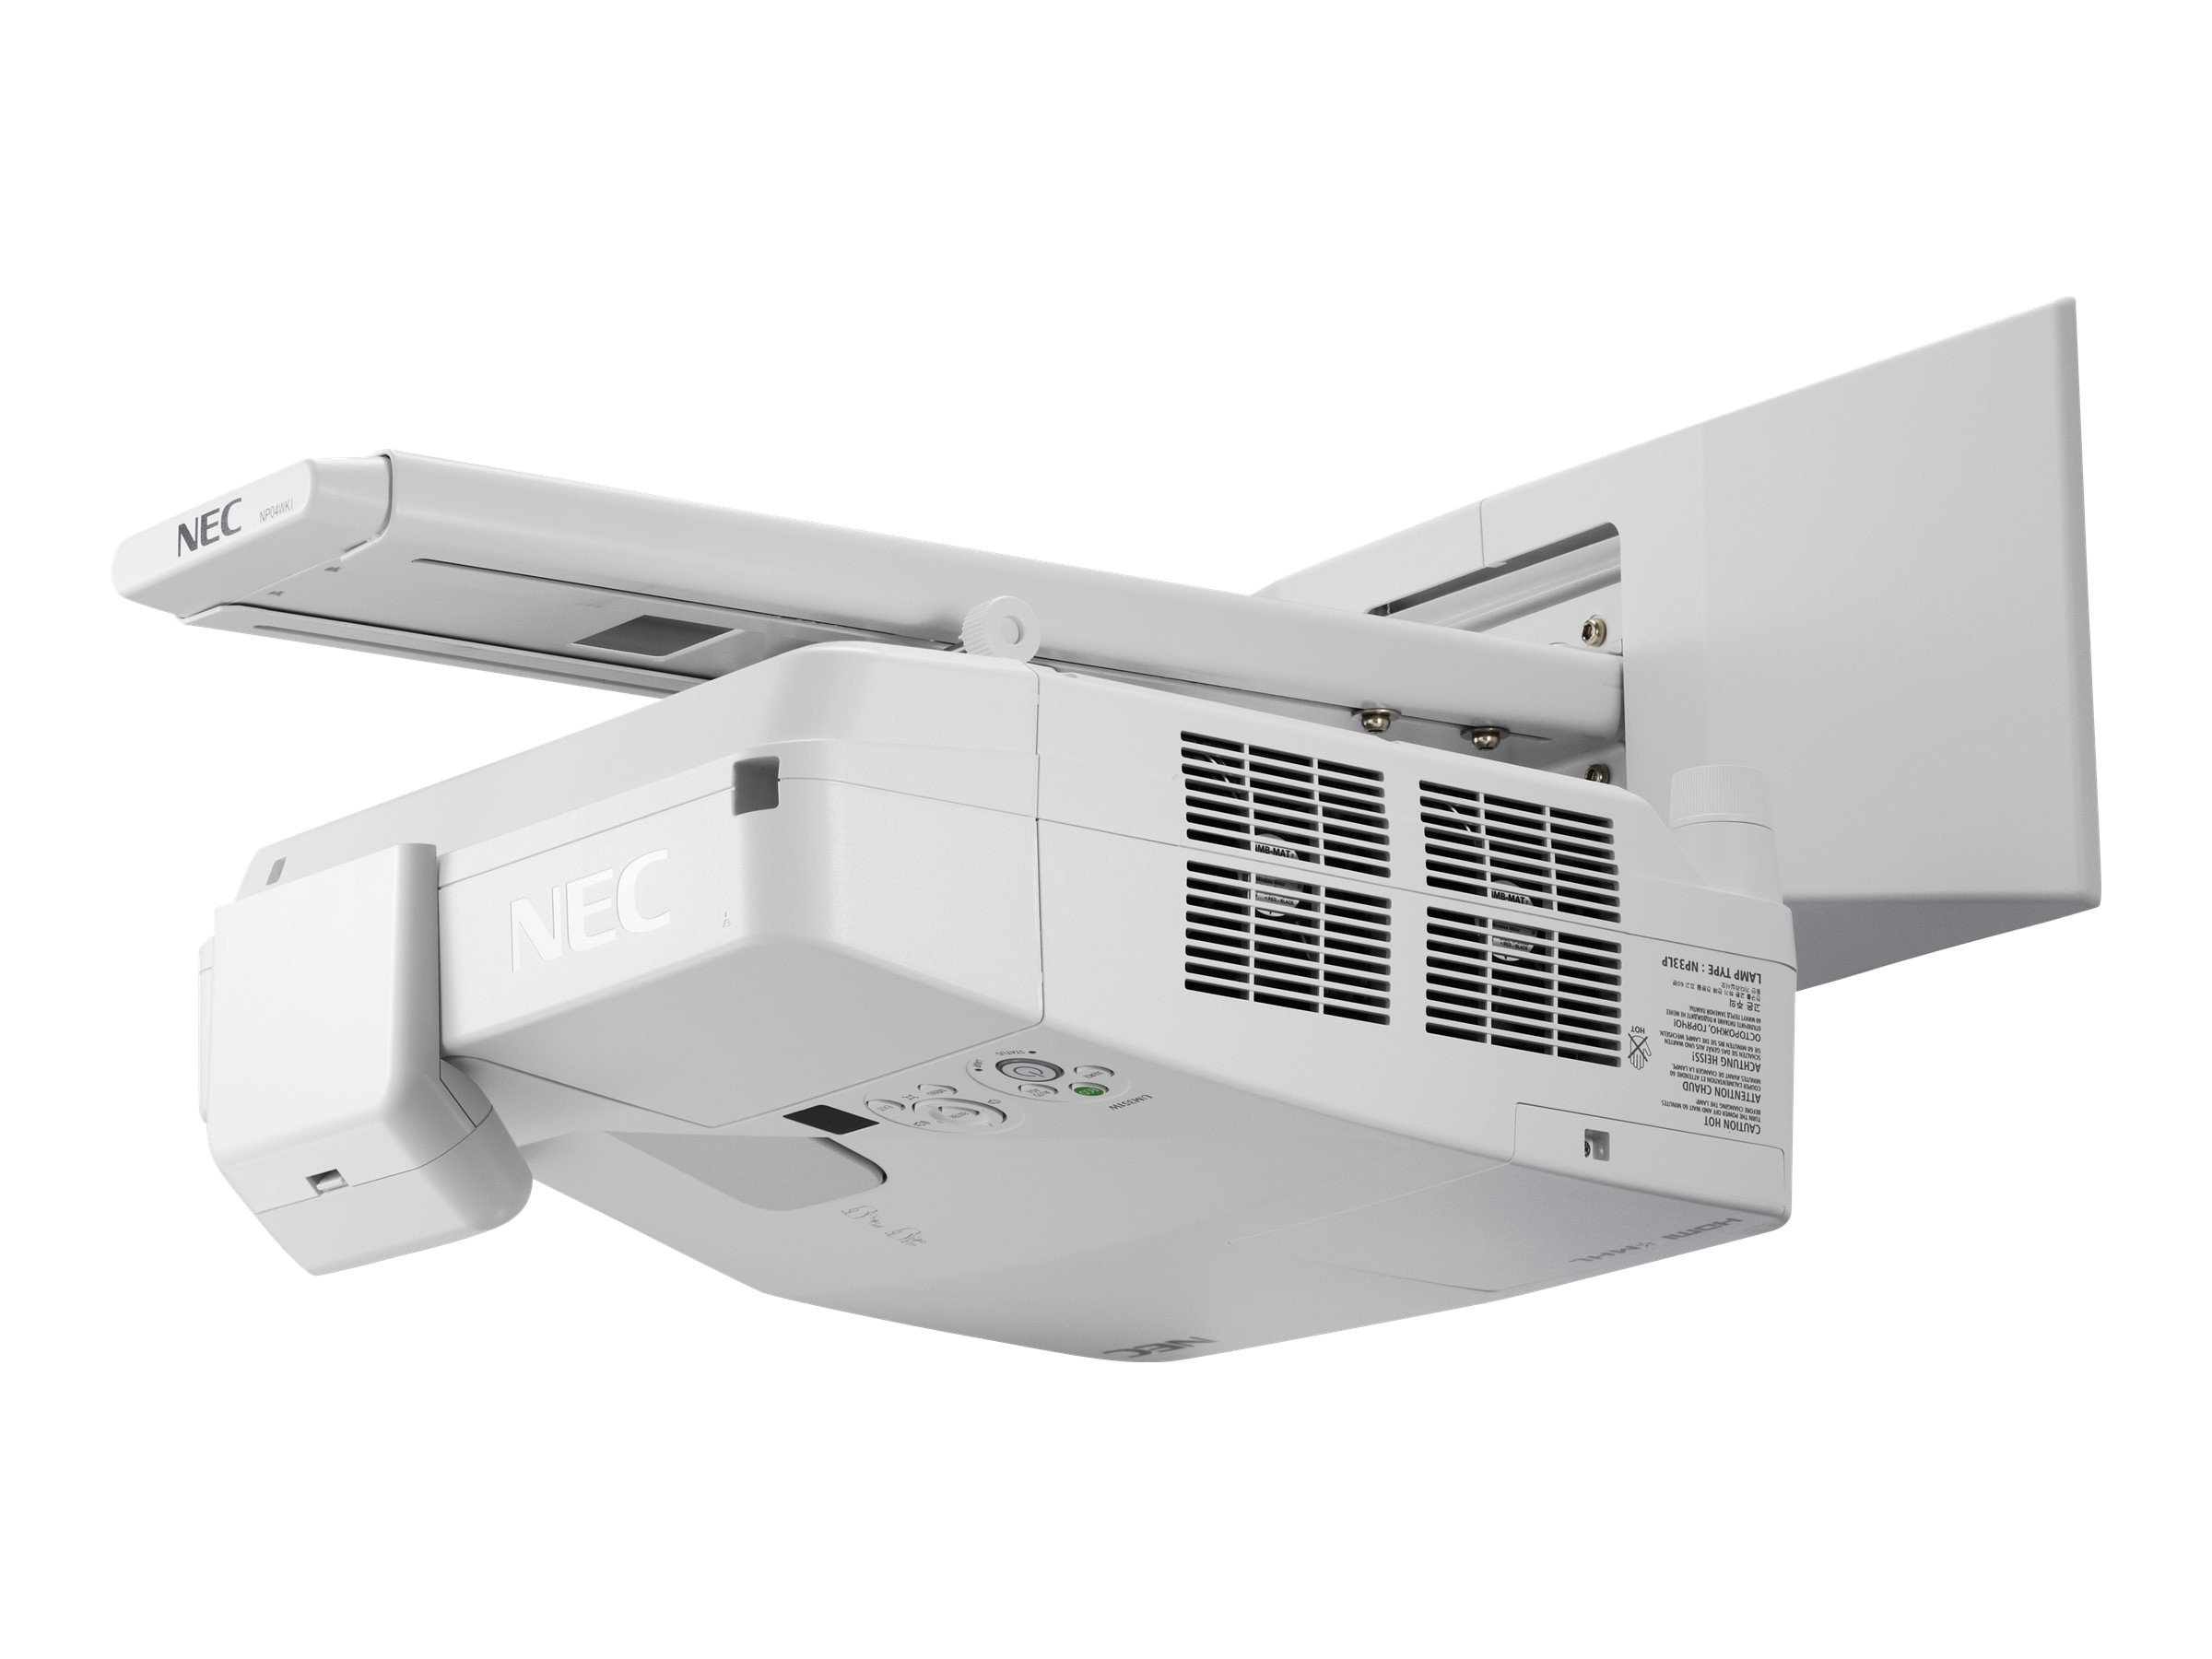 NEC UM351W Ultra Short Throw LCD Projector, 3500 Lumens, White with Interactive Module, Wall Mount, Pens